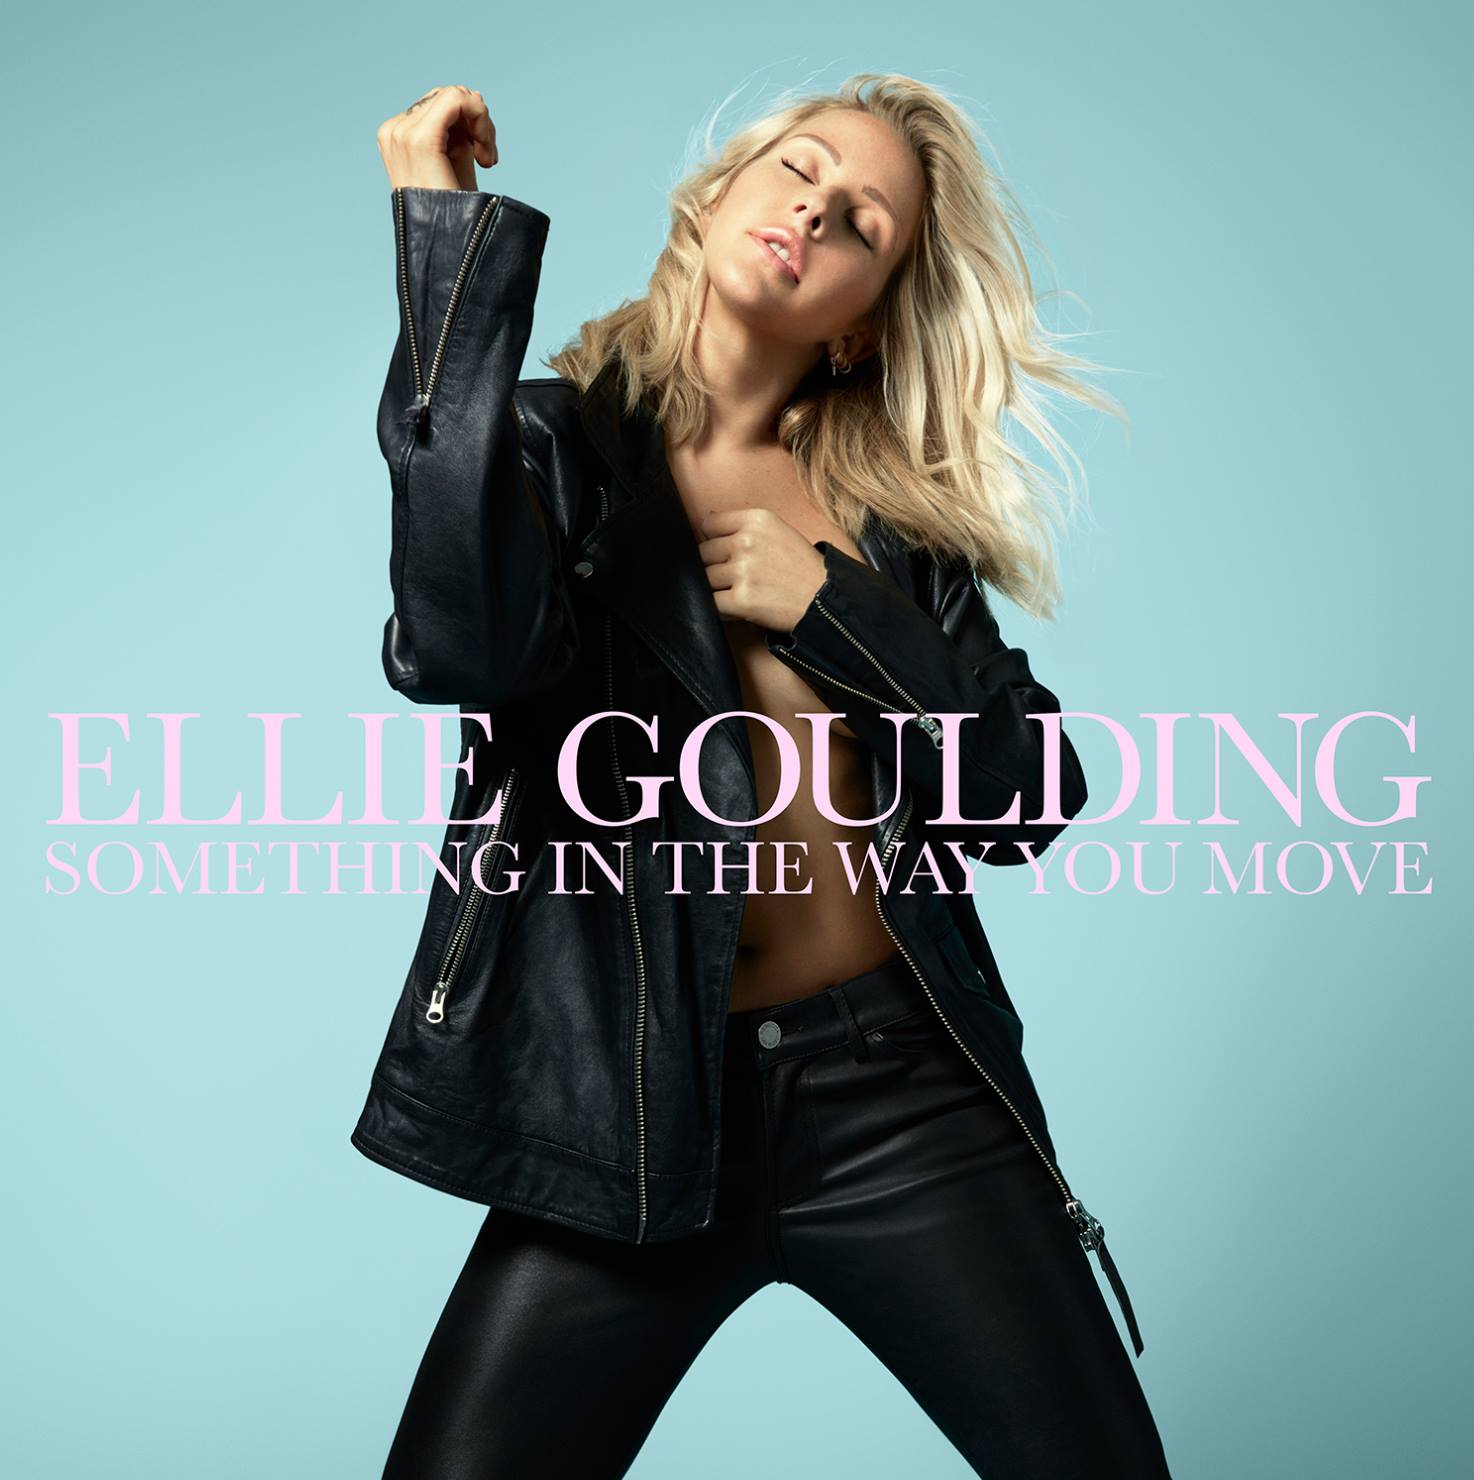 Ellie-Goulding-Something-In-the-Way-You-Move-2016-Final-Version